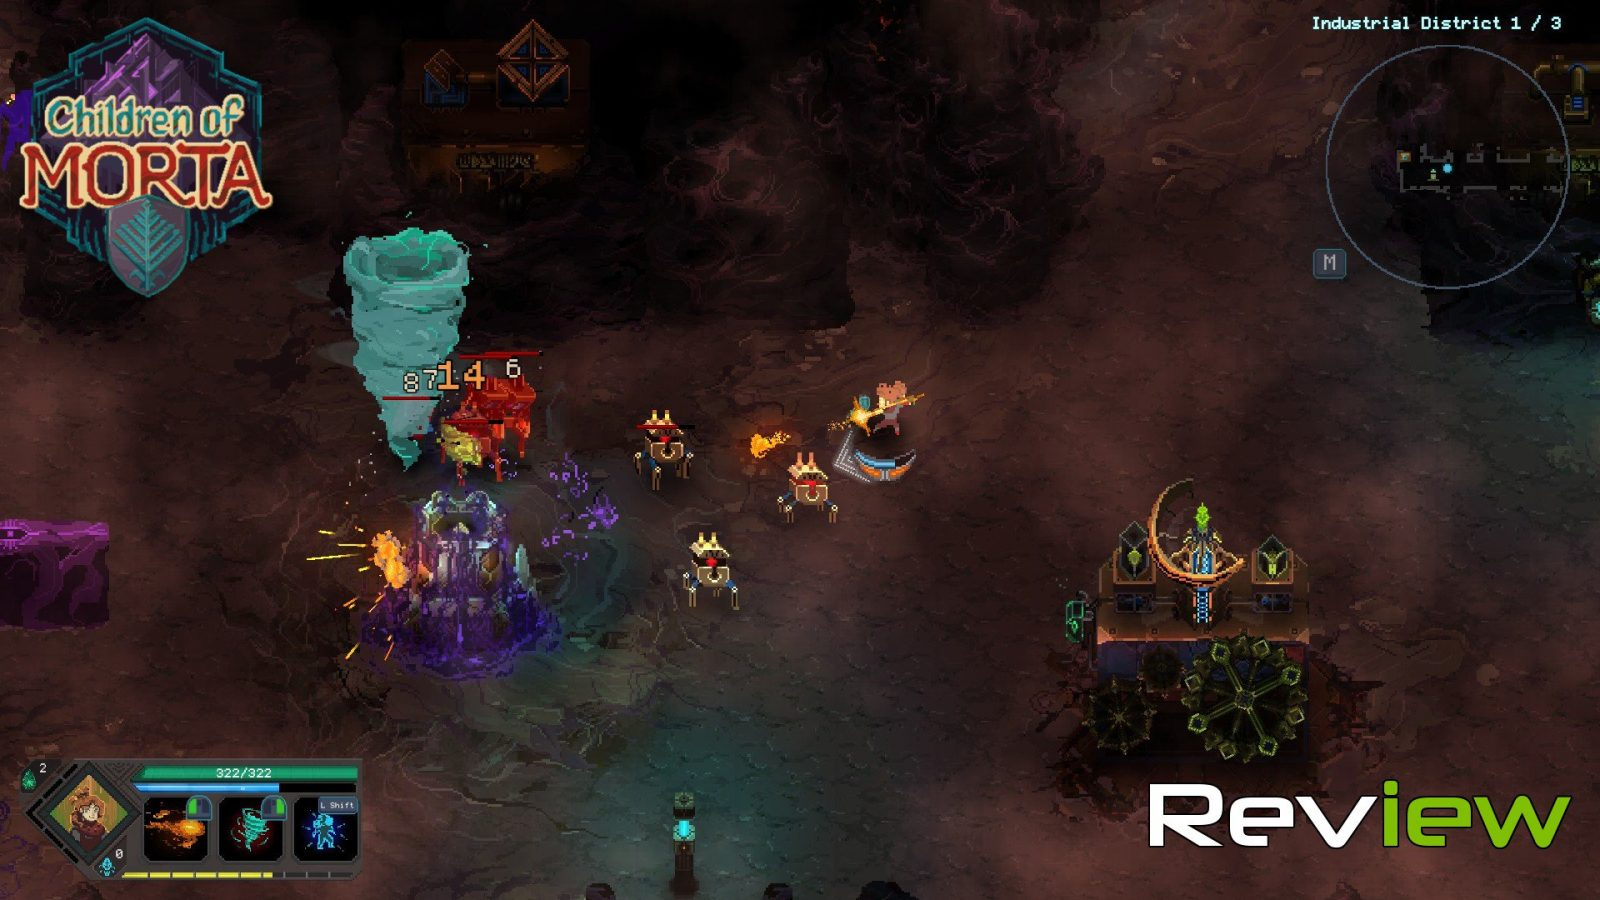 Children of Morta Review – An Appealing Action RPG